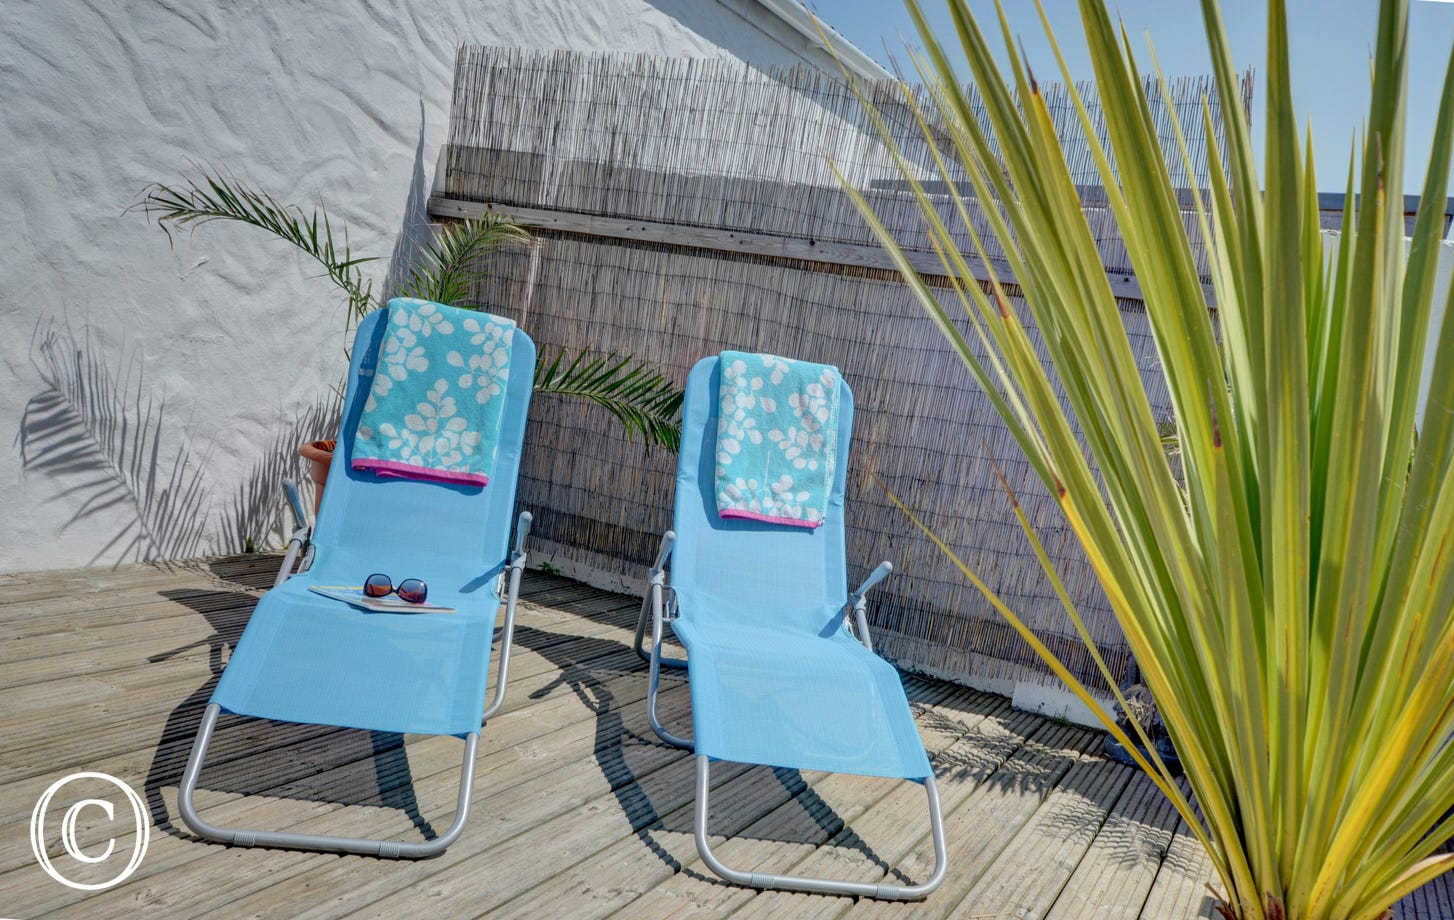 Top up your tan on the comfortable sun loungers!